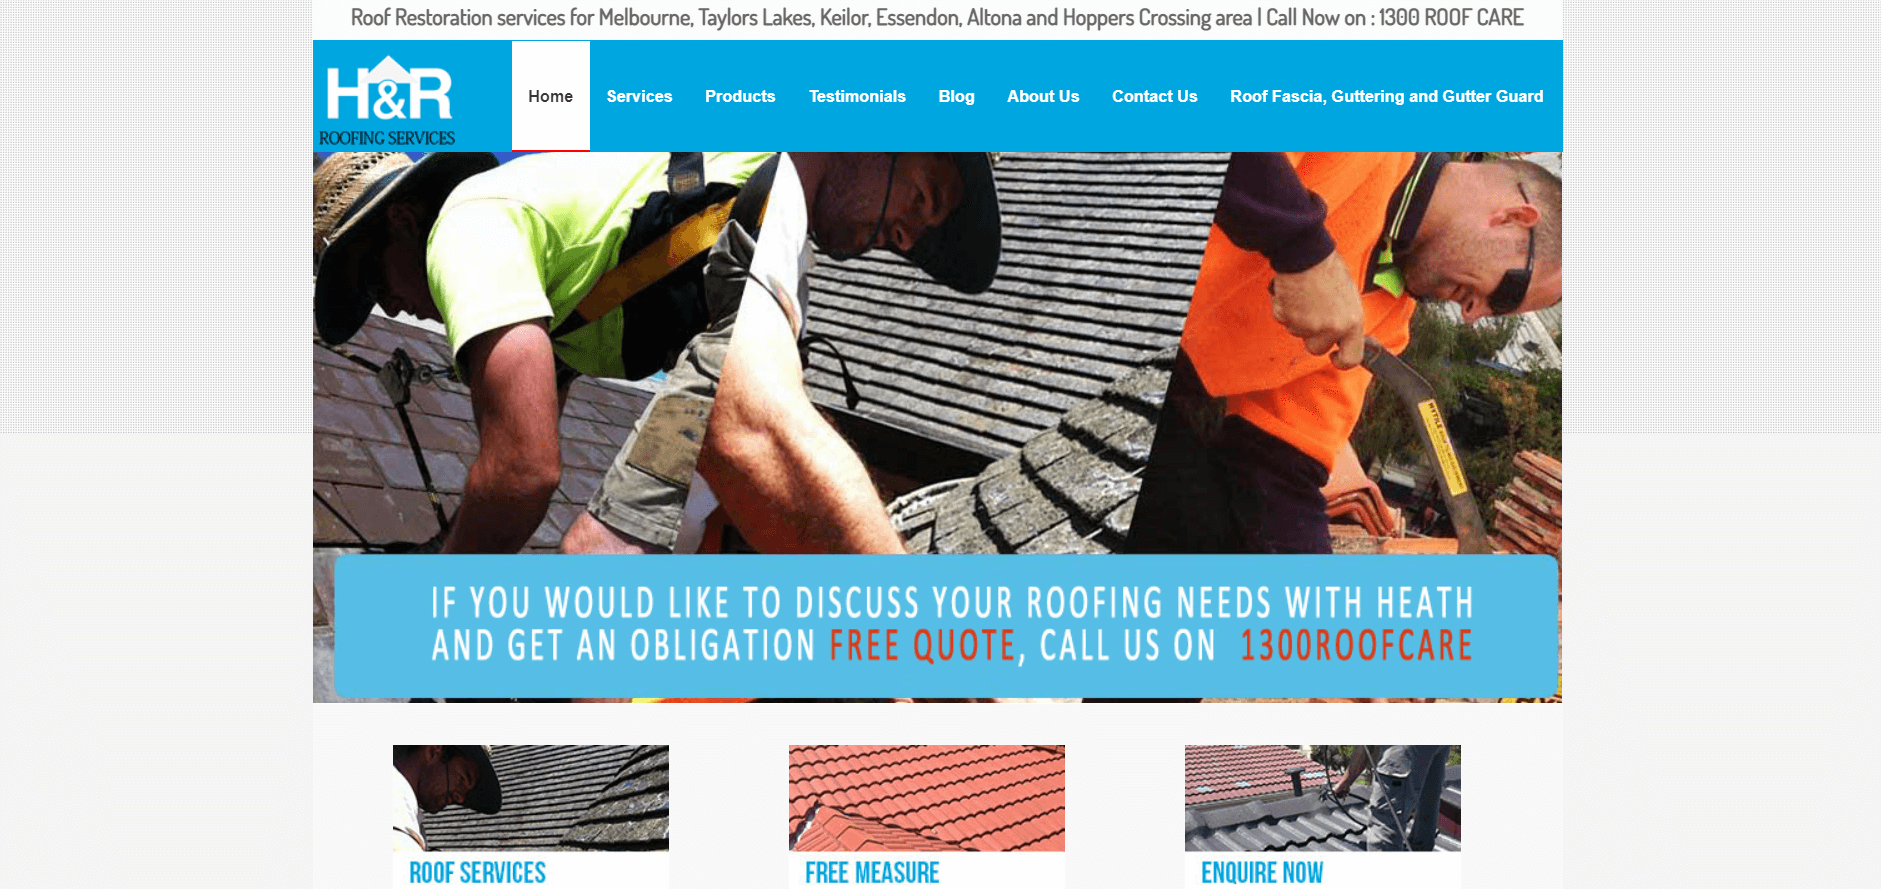 h&r roofing services